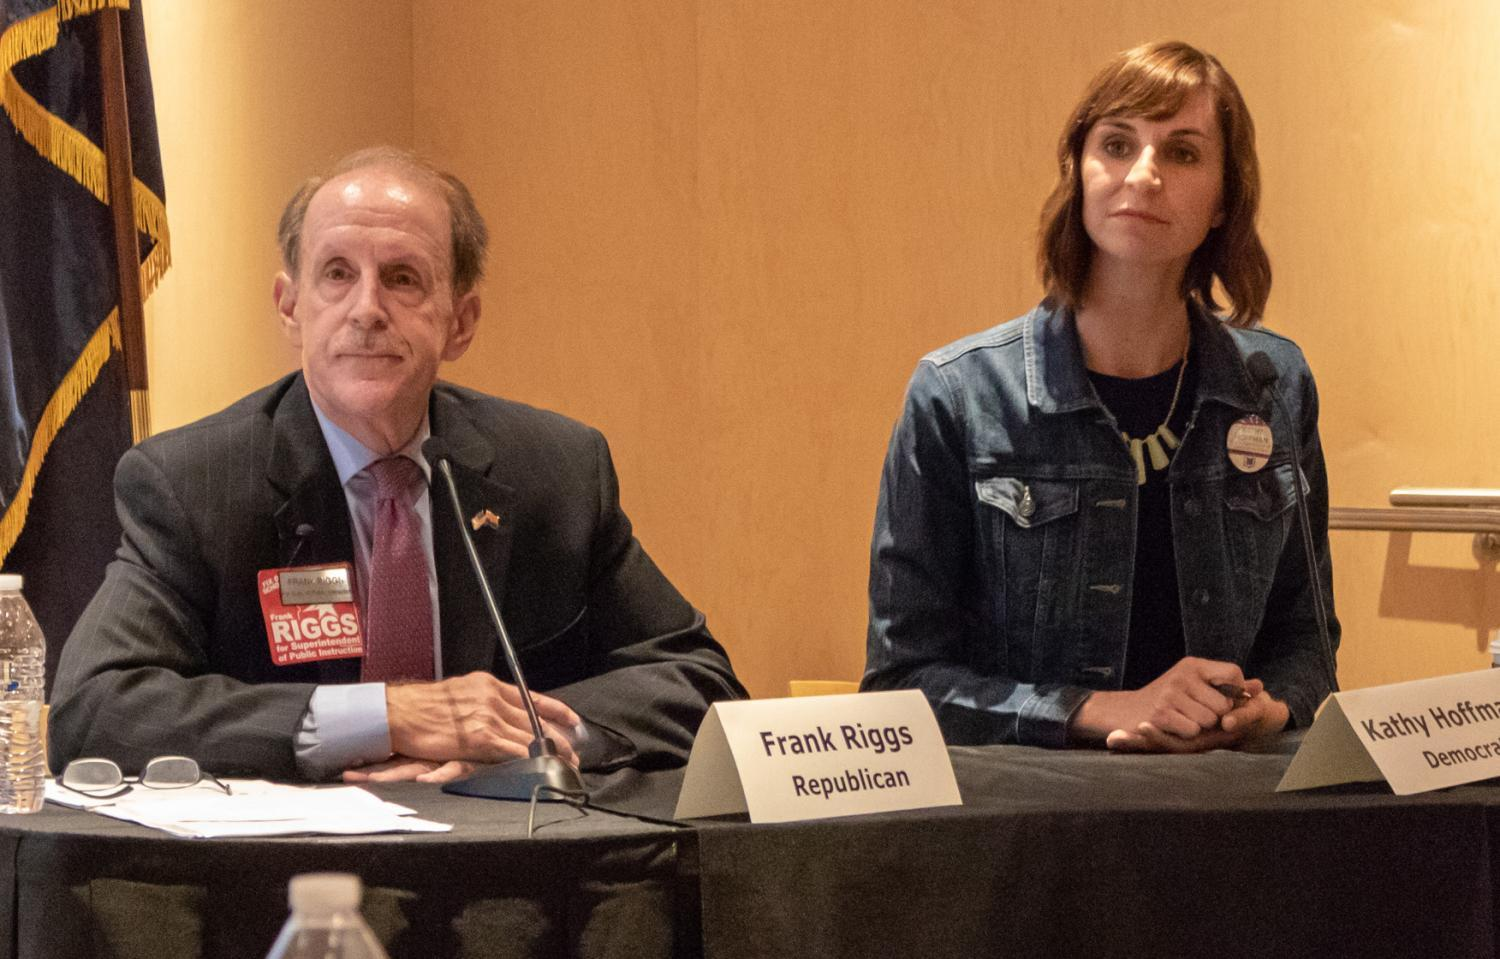 Frank Riggs and Kathy Hoffman